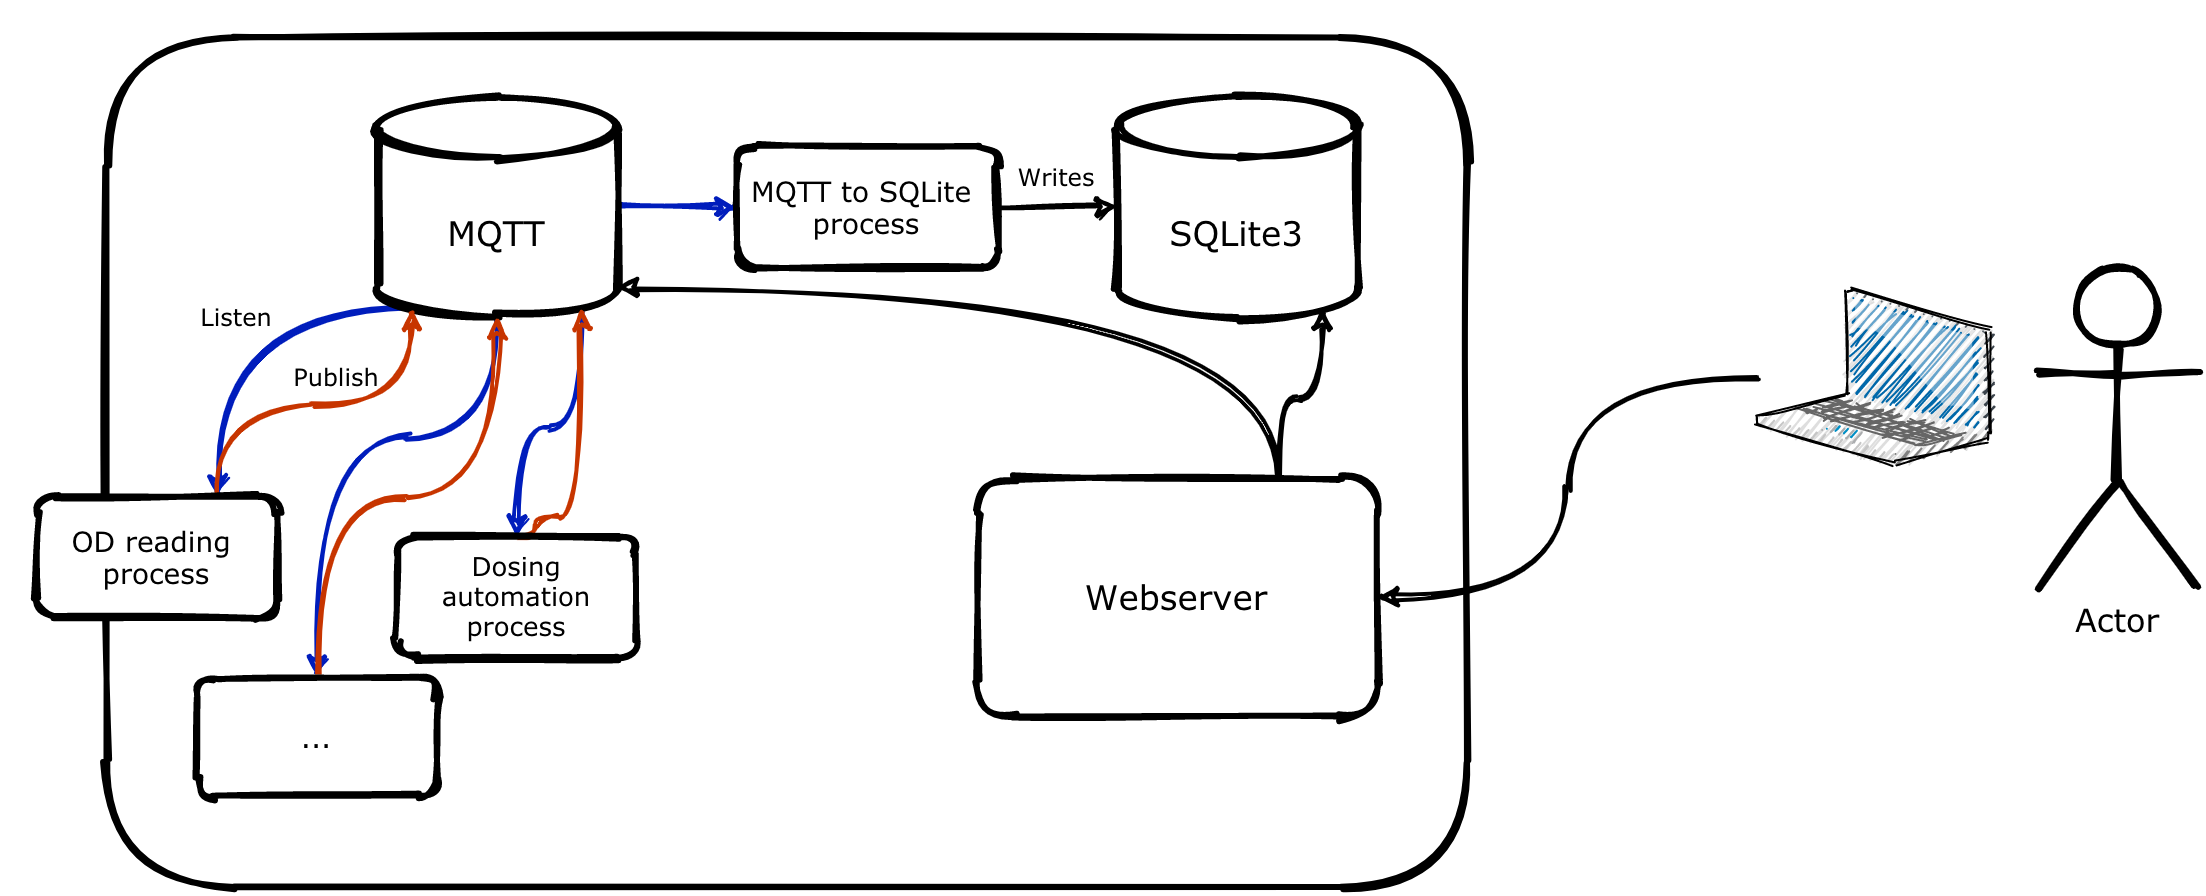 Users connecting to the webserver, MQTT and SQLite